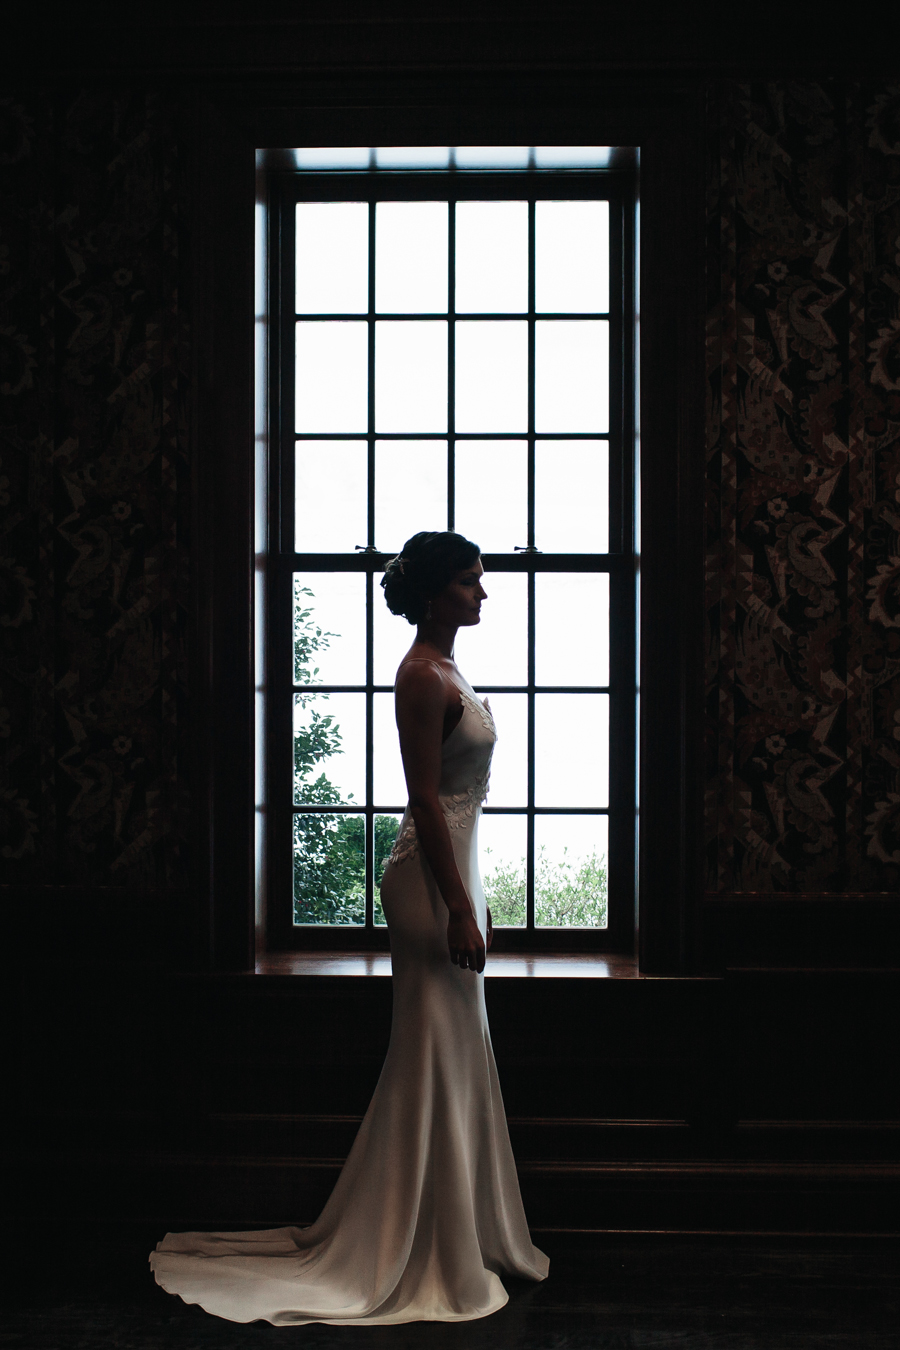 Shades-of-grey-inspired-Connecticut-wedding-fashion-style-black-tie-photographer-BSC-Amy-Champagne-Events-Portraits_0006.jpg